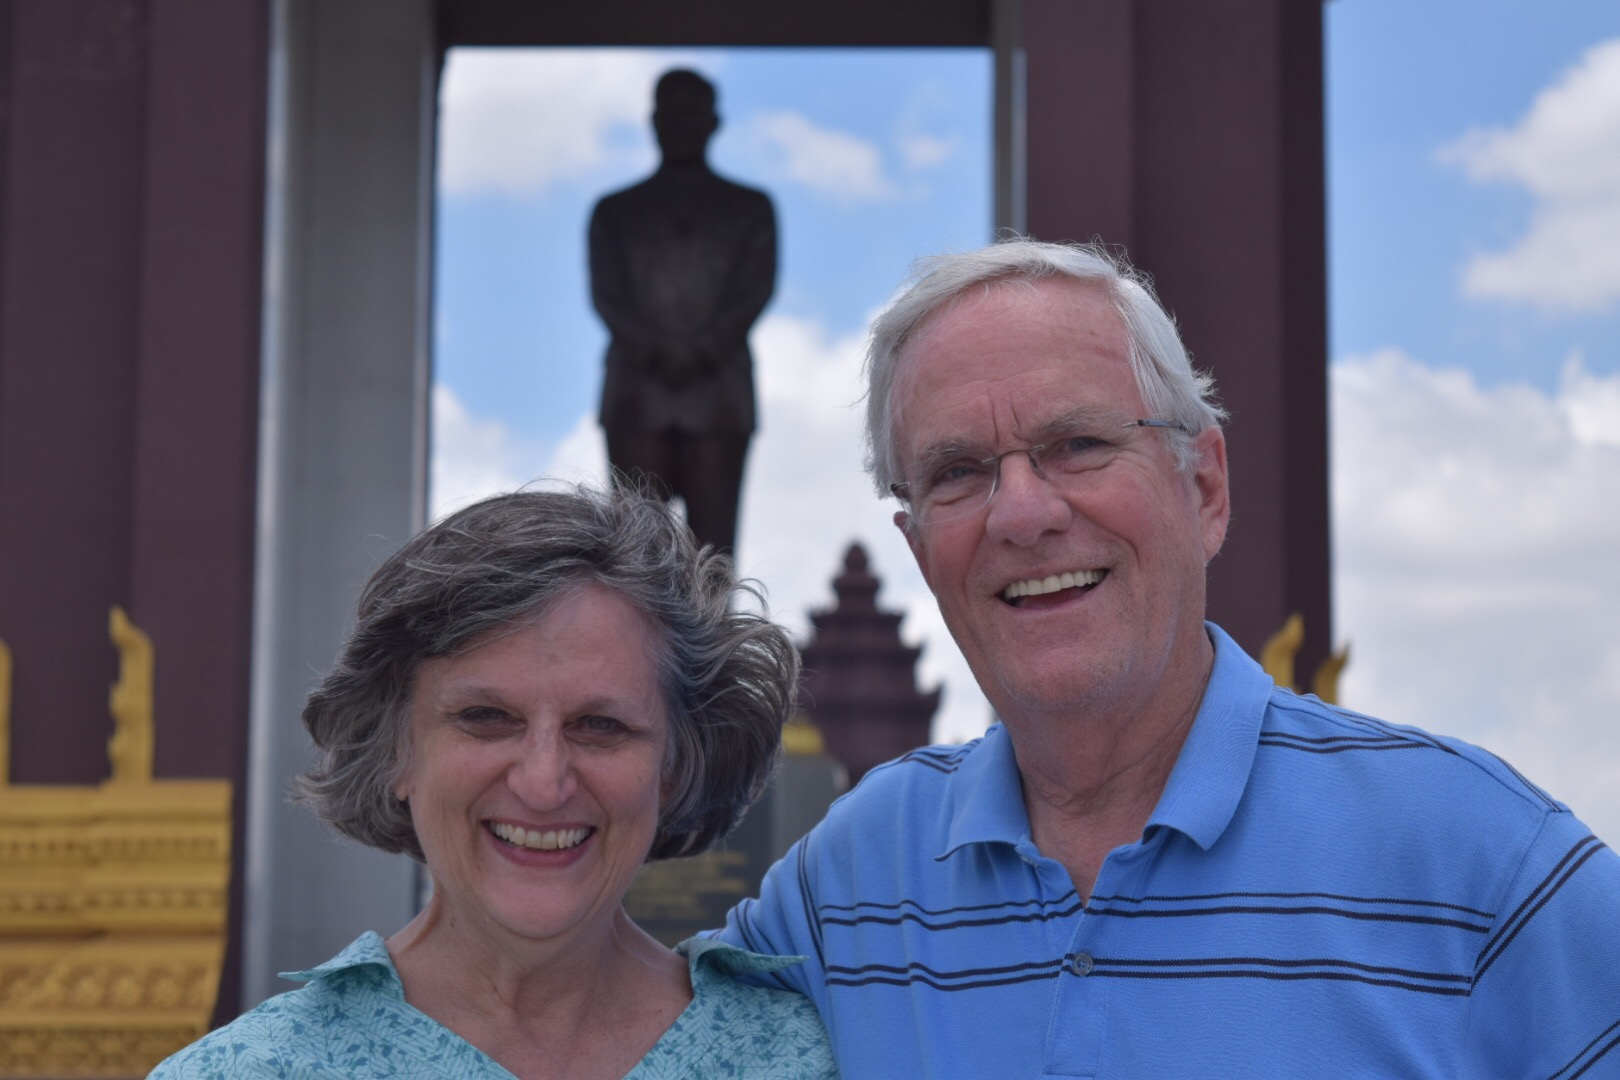 Independence Monument, King Norodom Sihanouk, and two happy grandparents.